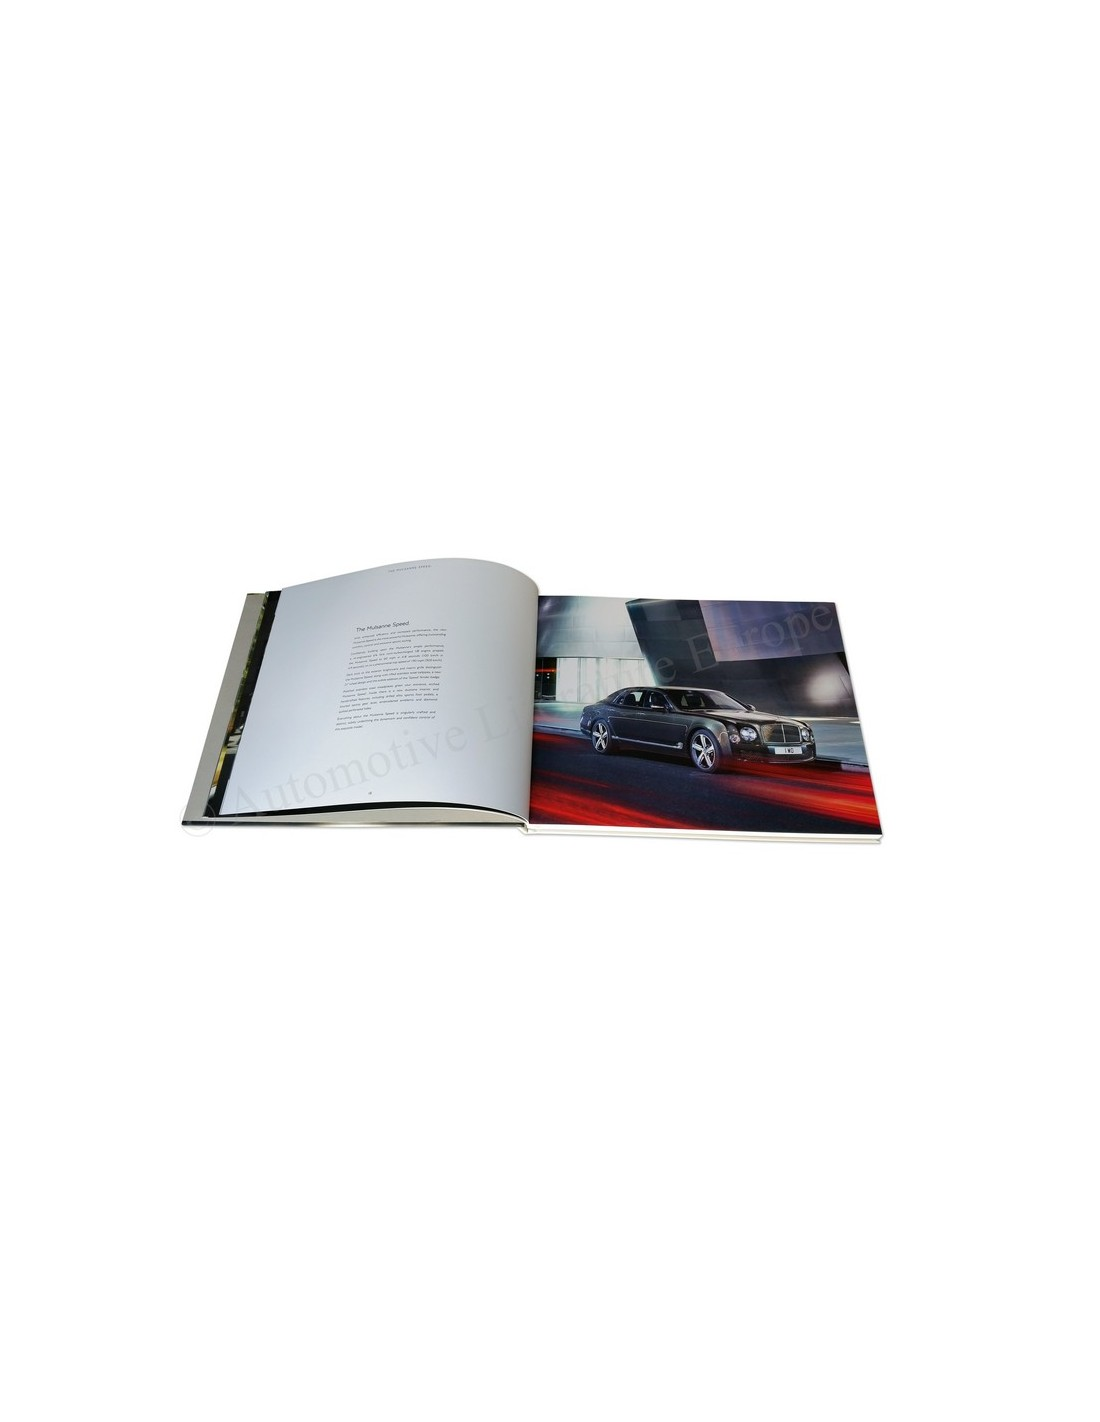 2015 Cadillac Brochure By Mail | Autos Post